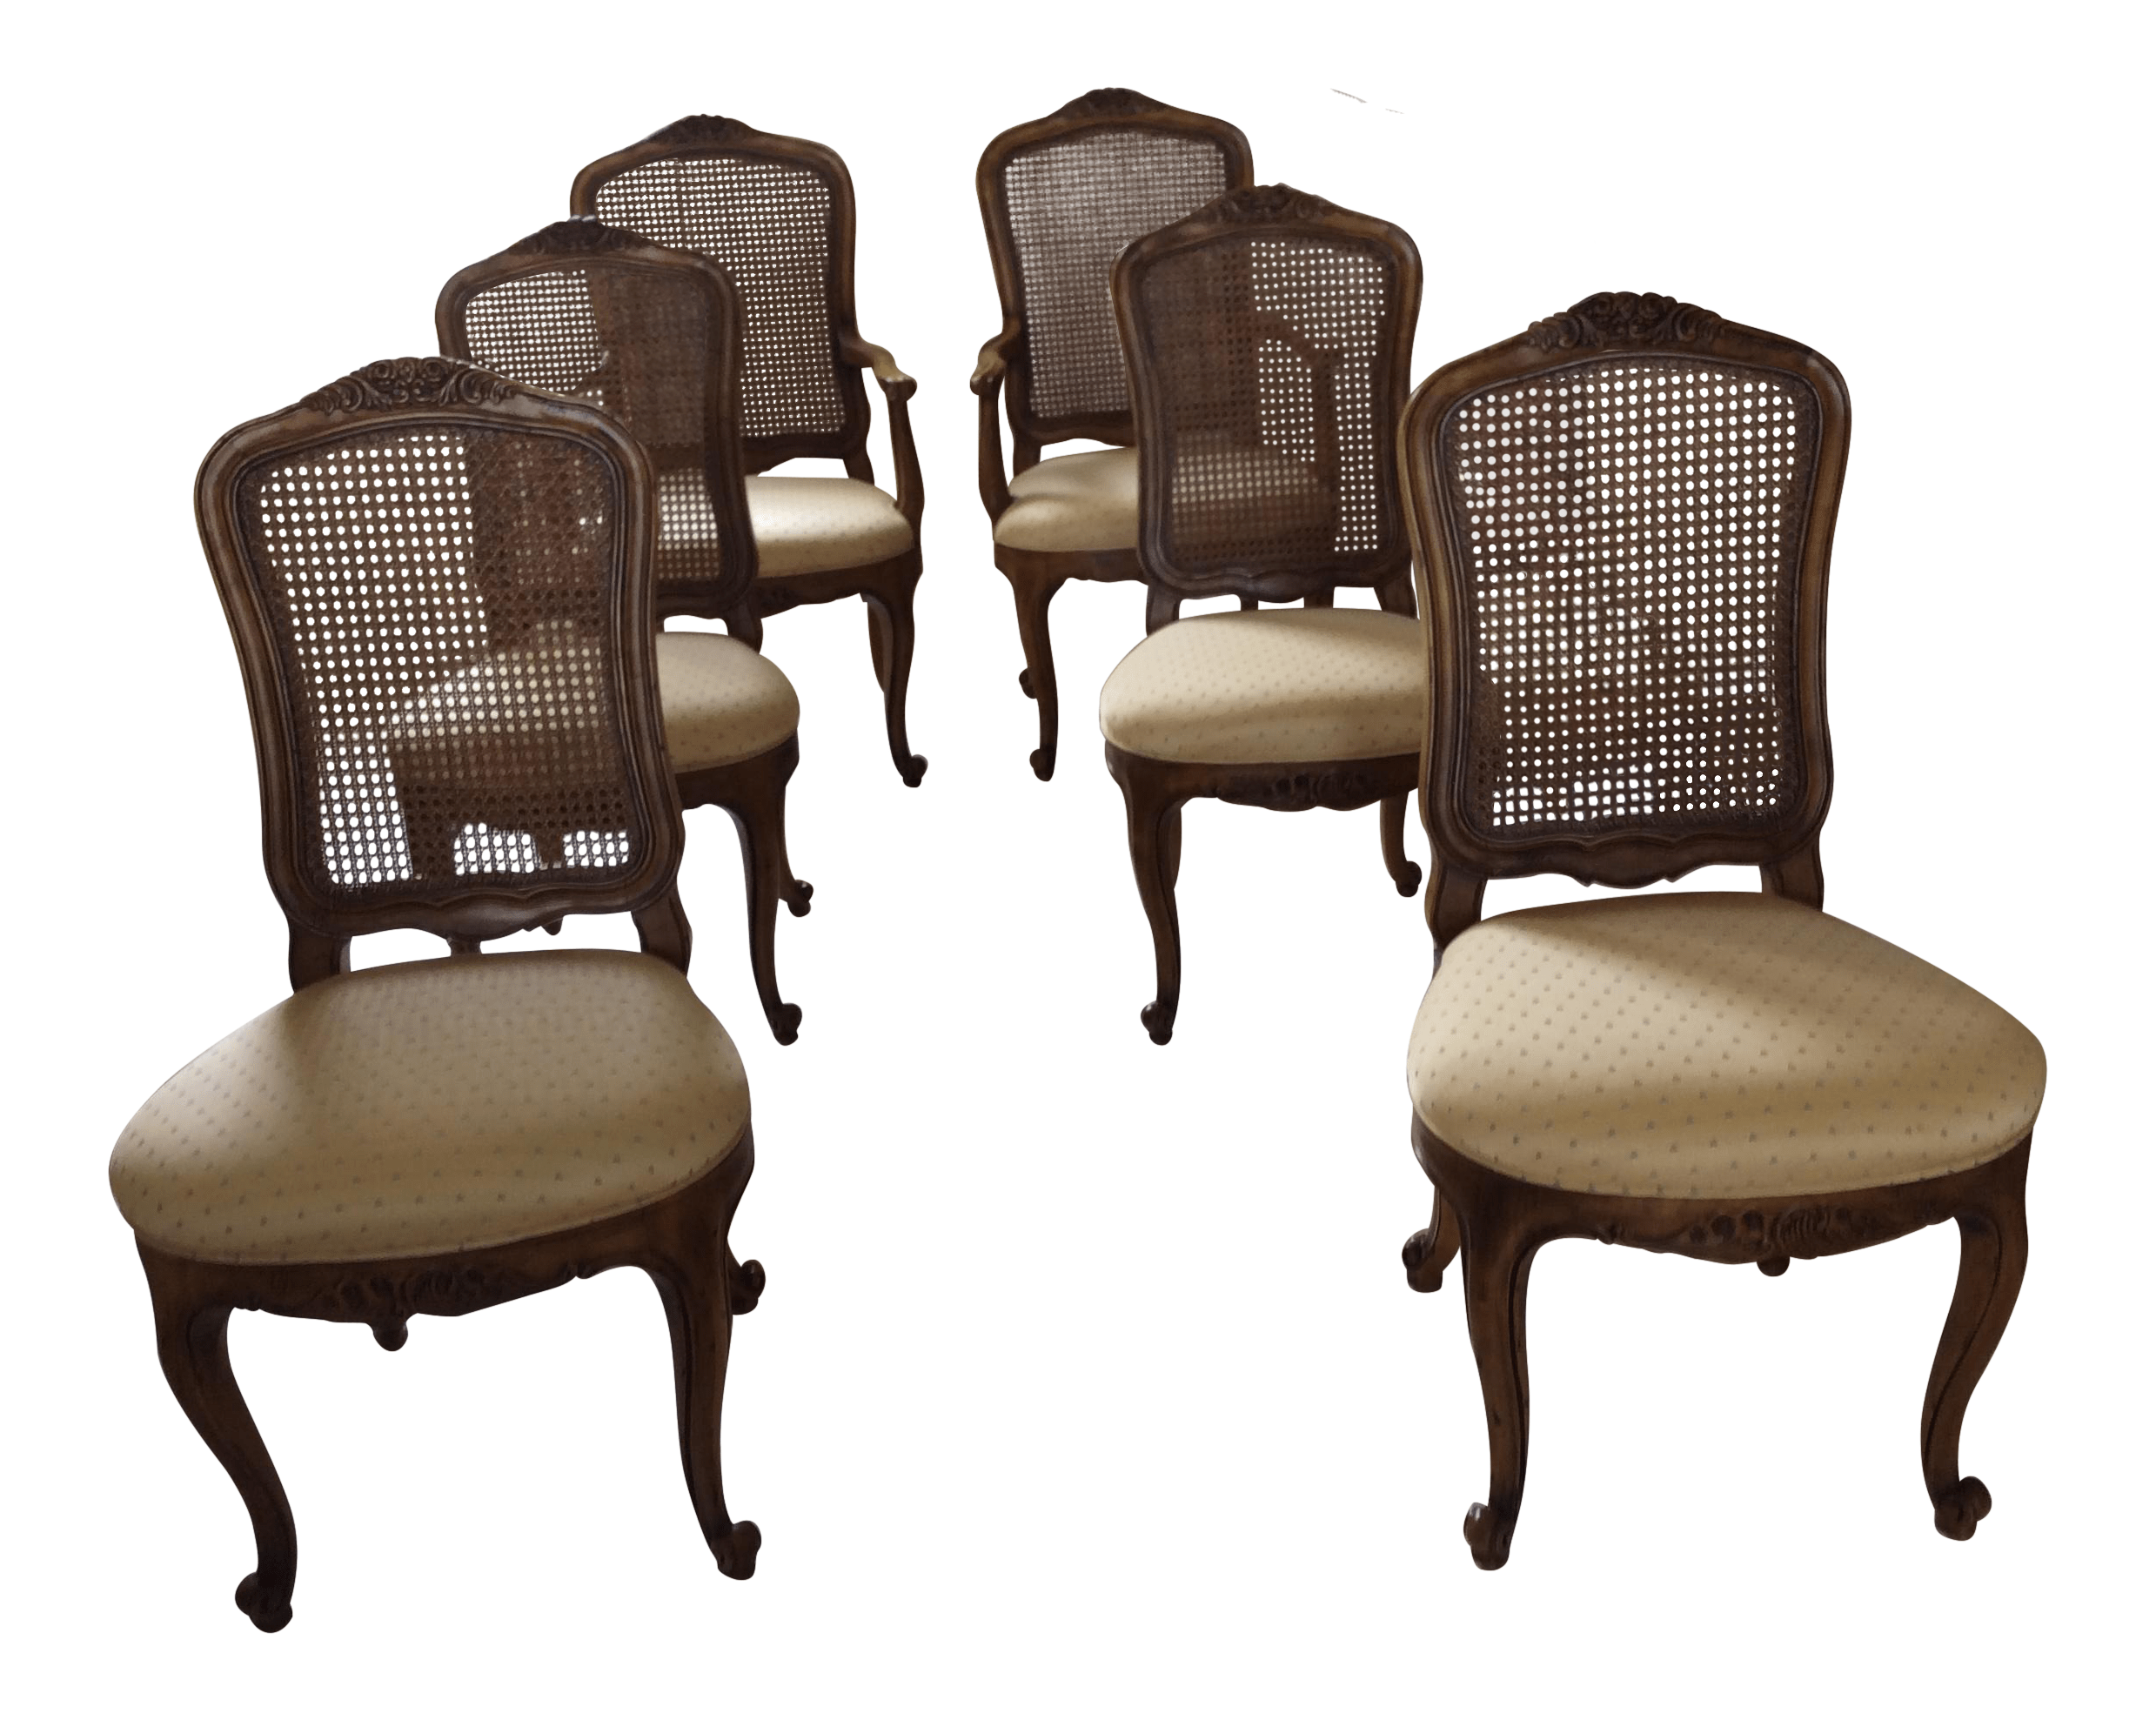 French Dining Chairs Henredon French Provincial Cane Back Dining Chairs 6